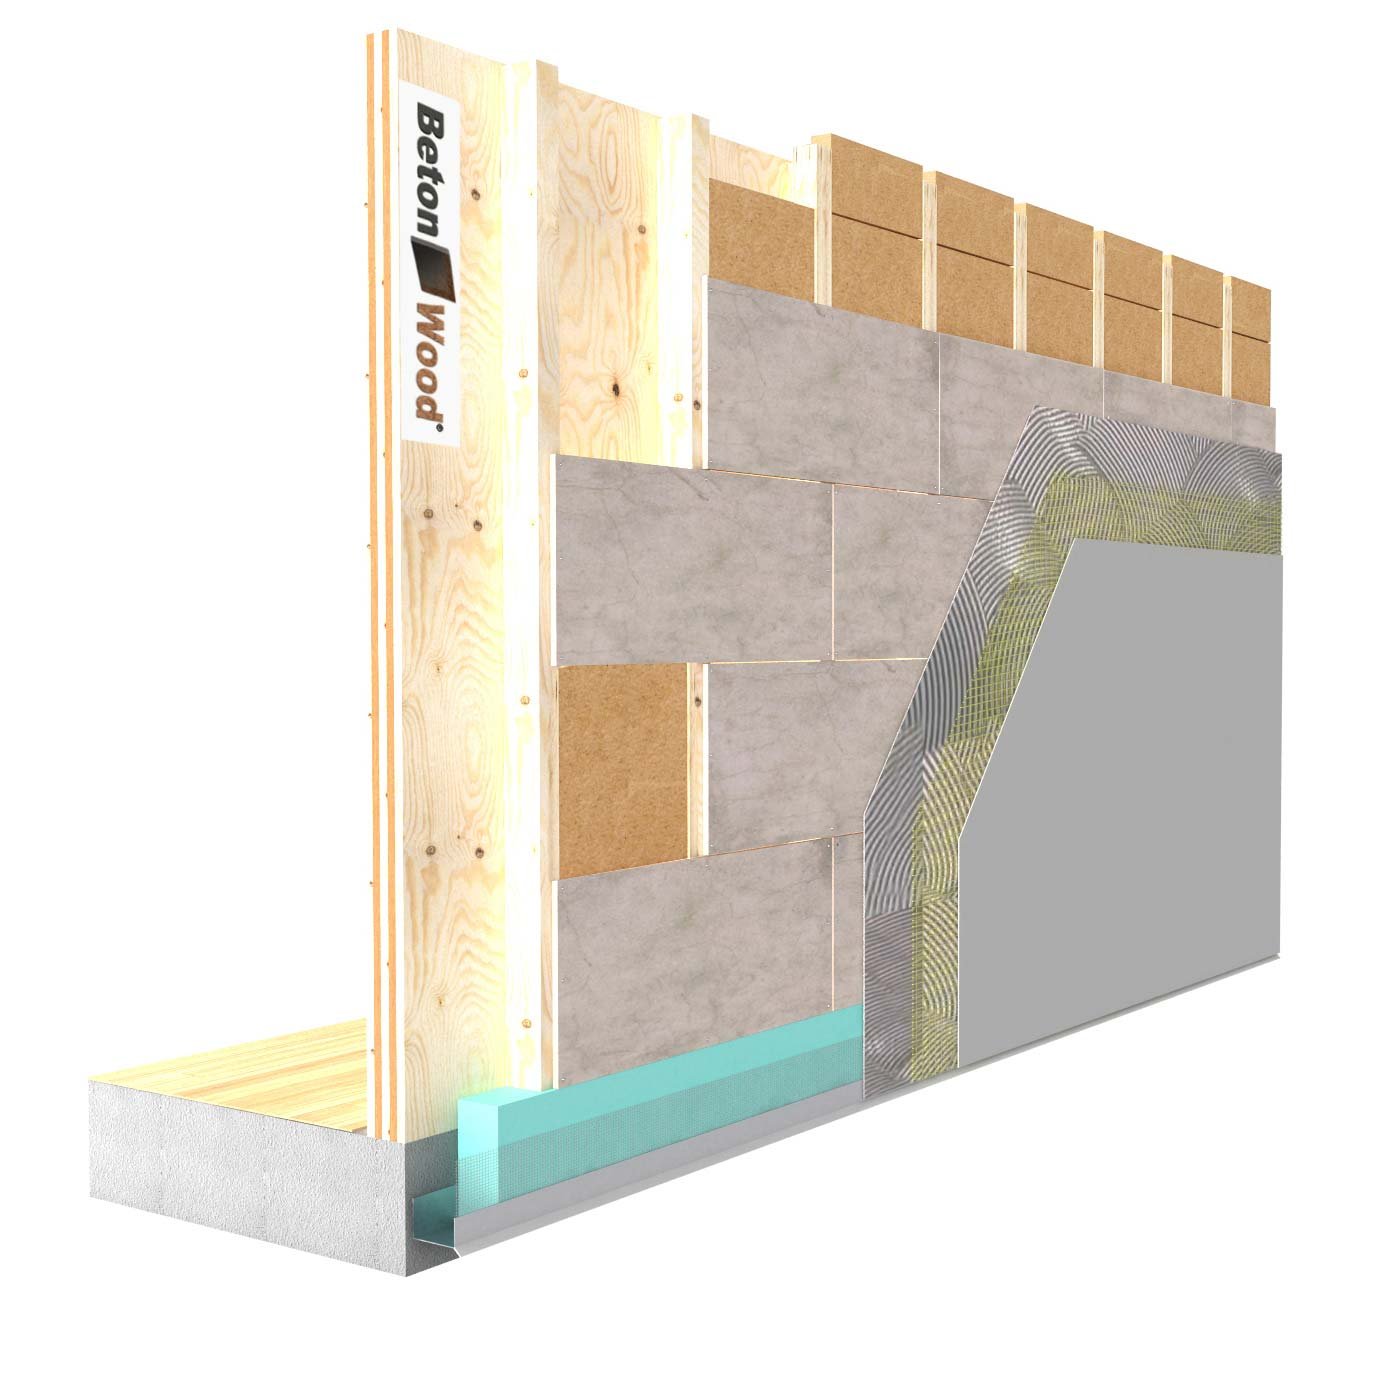 External insulation system with Fiber Wood FiberTherm dry and cement bonded particle board on X-Lam